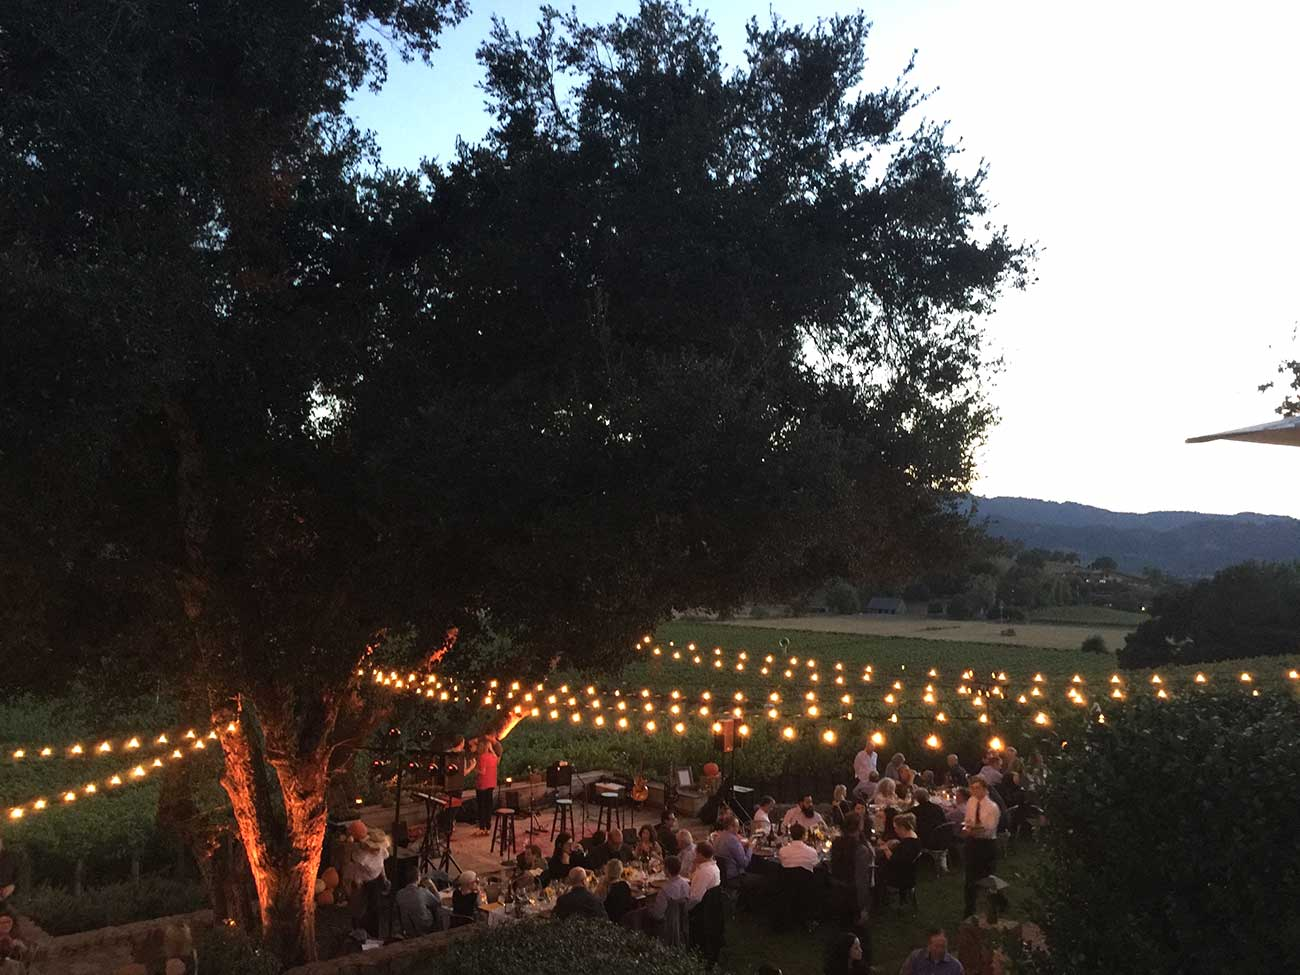 People mingling at dusk at an outdoor event overlooking Napa valley